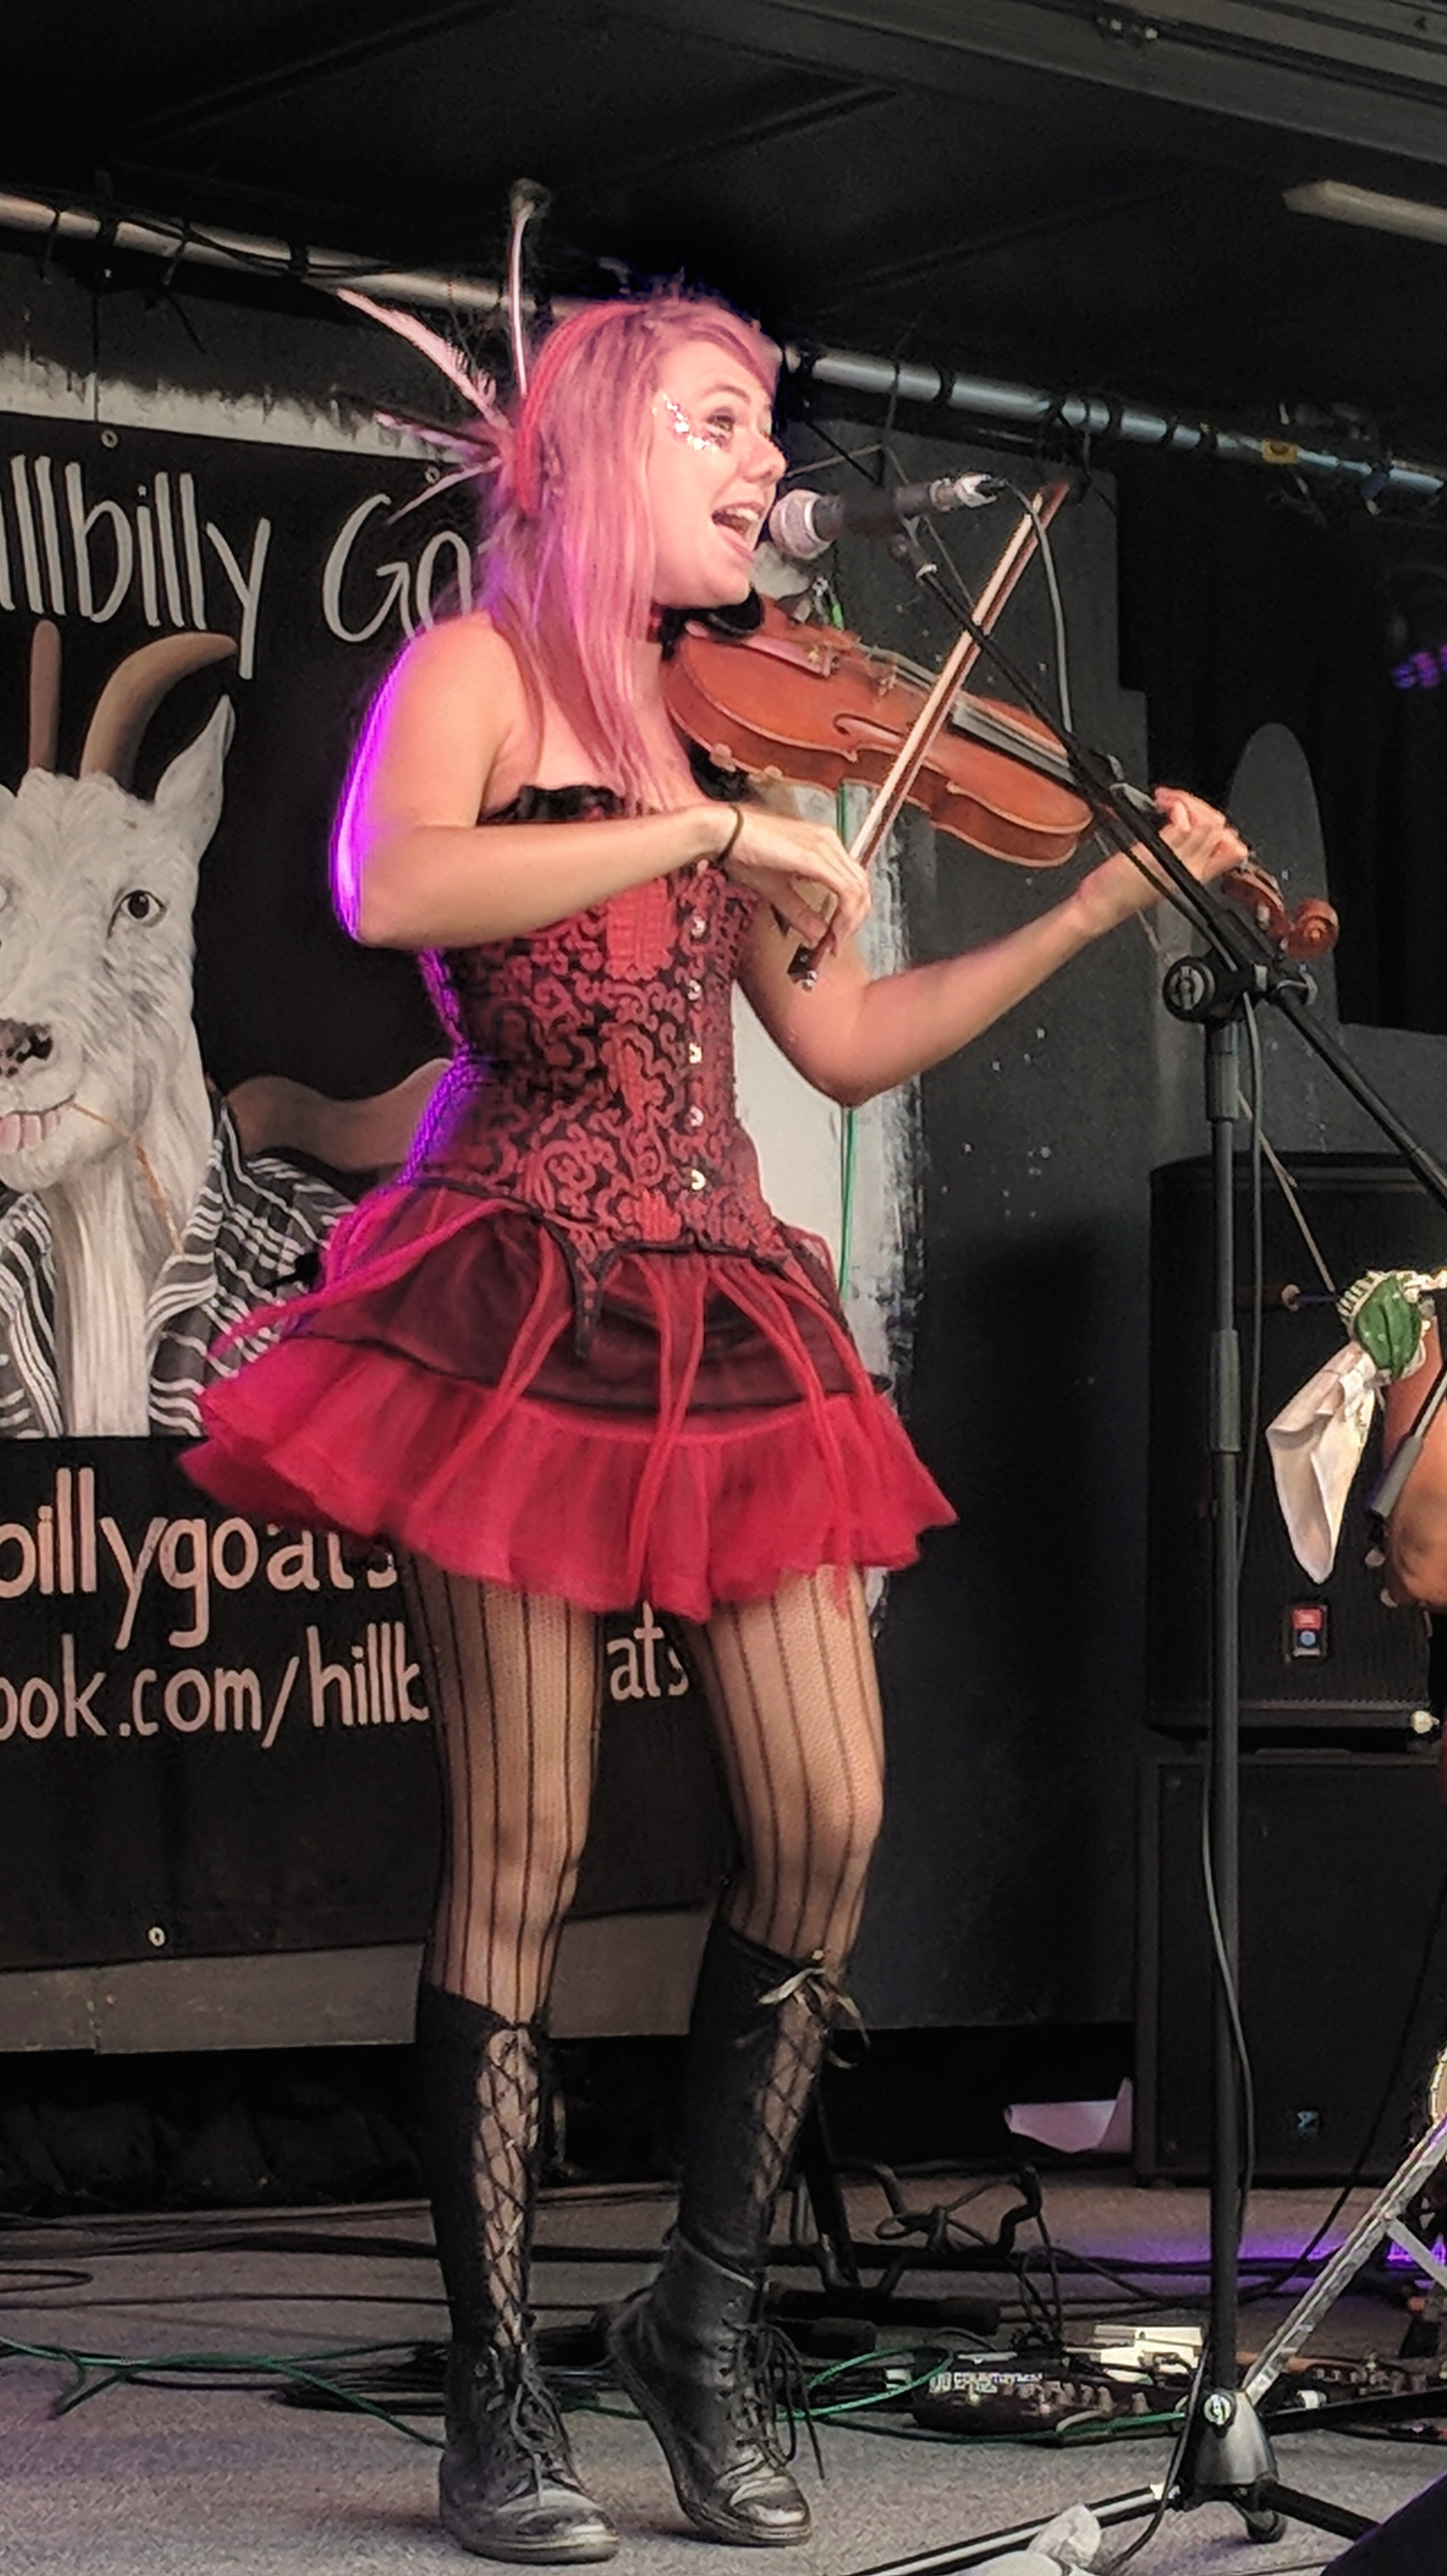 The fiddle player of The Hillybilly Goats